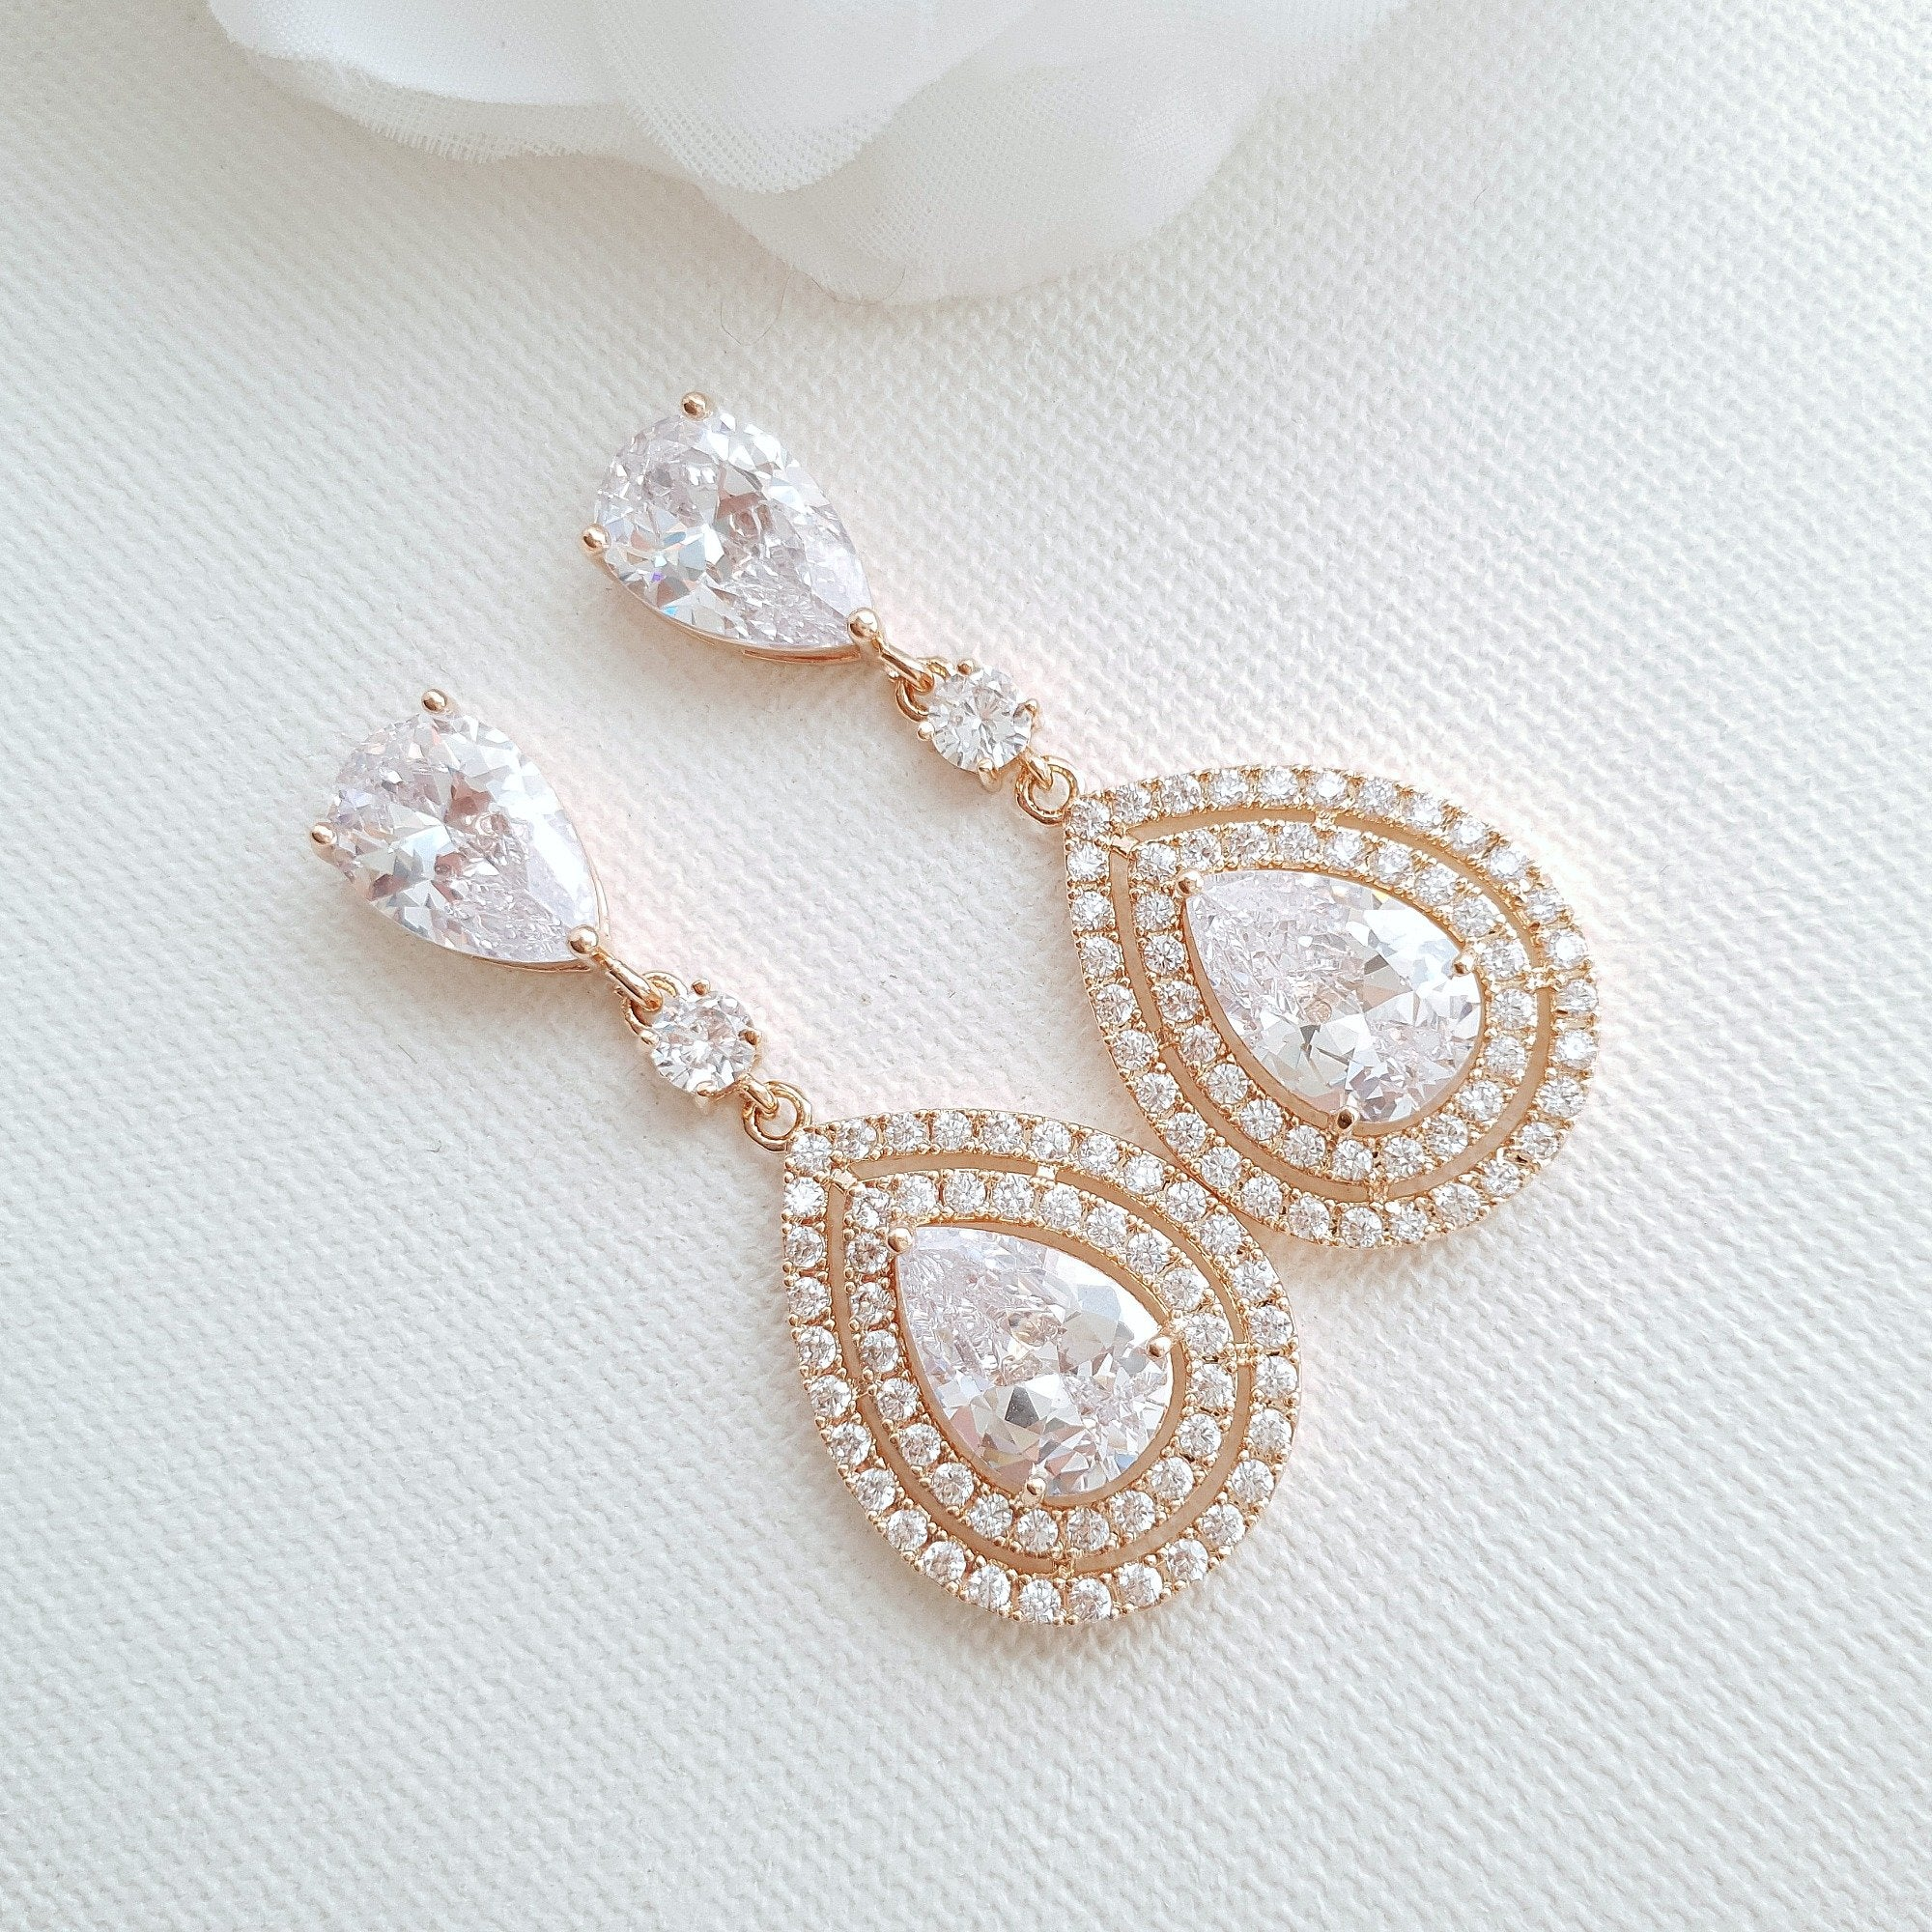 Rose Gold Wedding Earrings With Teardrops- Joni - PoetryDesigns